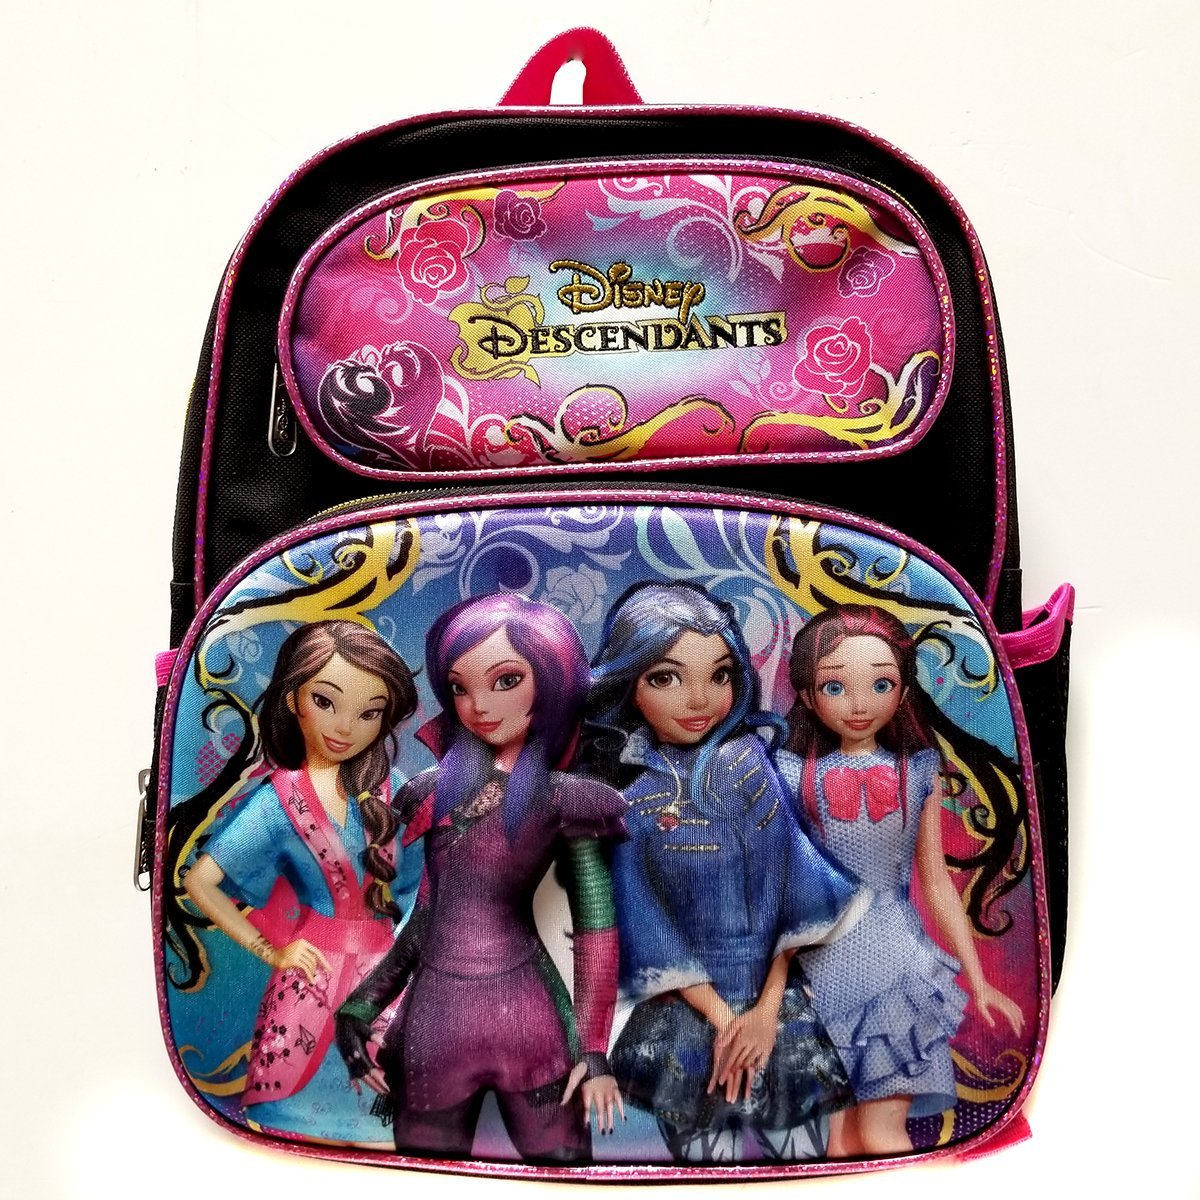 "Deluxe 3D Disney Cartoon Descendants 12"" Double Front Pockets With Padded Back and Shoulder Straps That Are... by Disney"